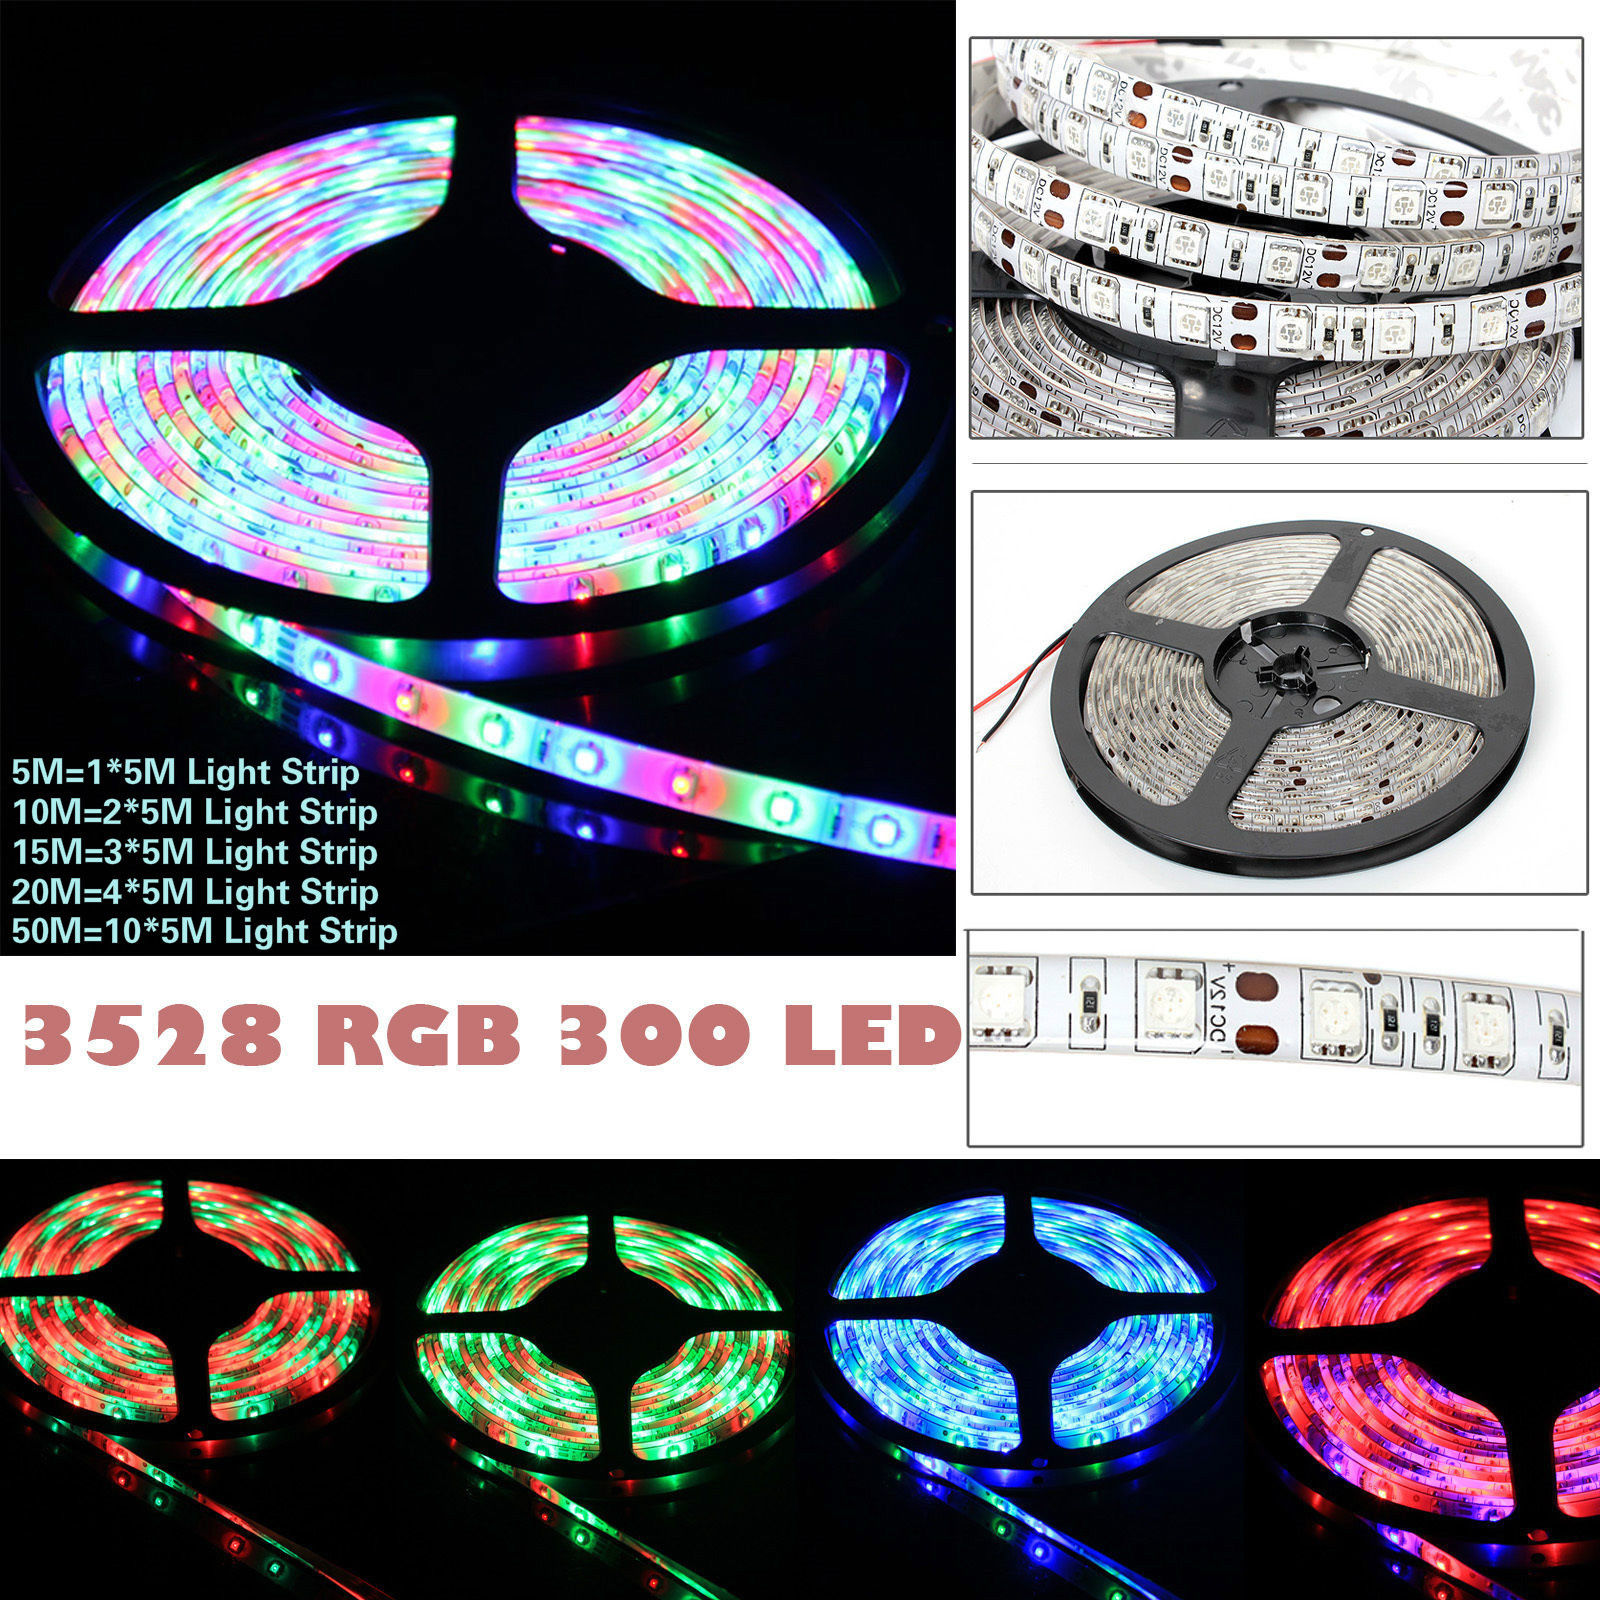 3528 rgb 5m 10m 15m 20m 50m led strip light tape 24key remote power supply ebay. Black Bedroom Furniture Sets. Home Design Ideas